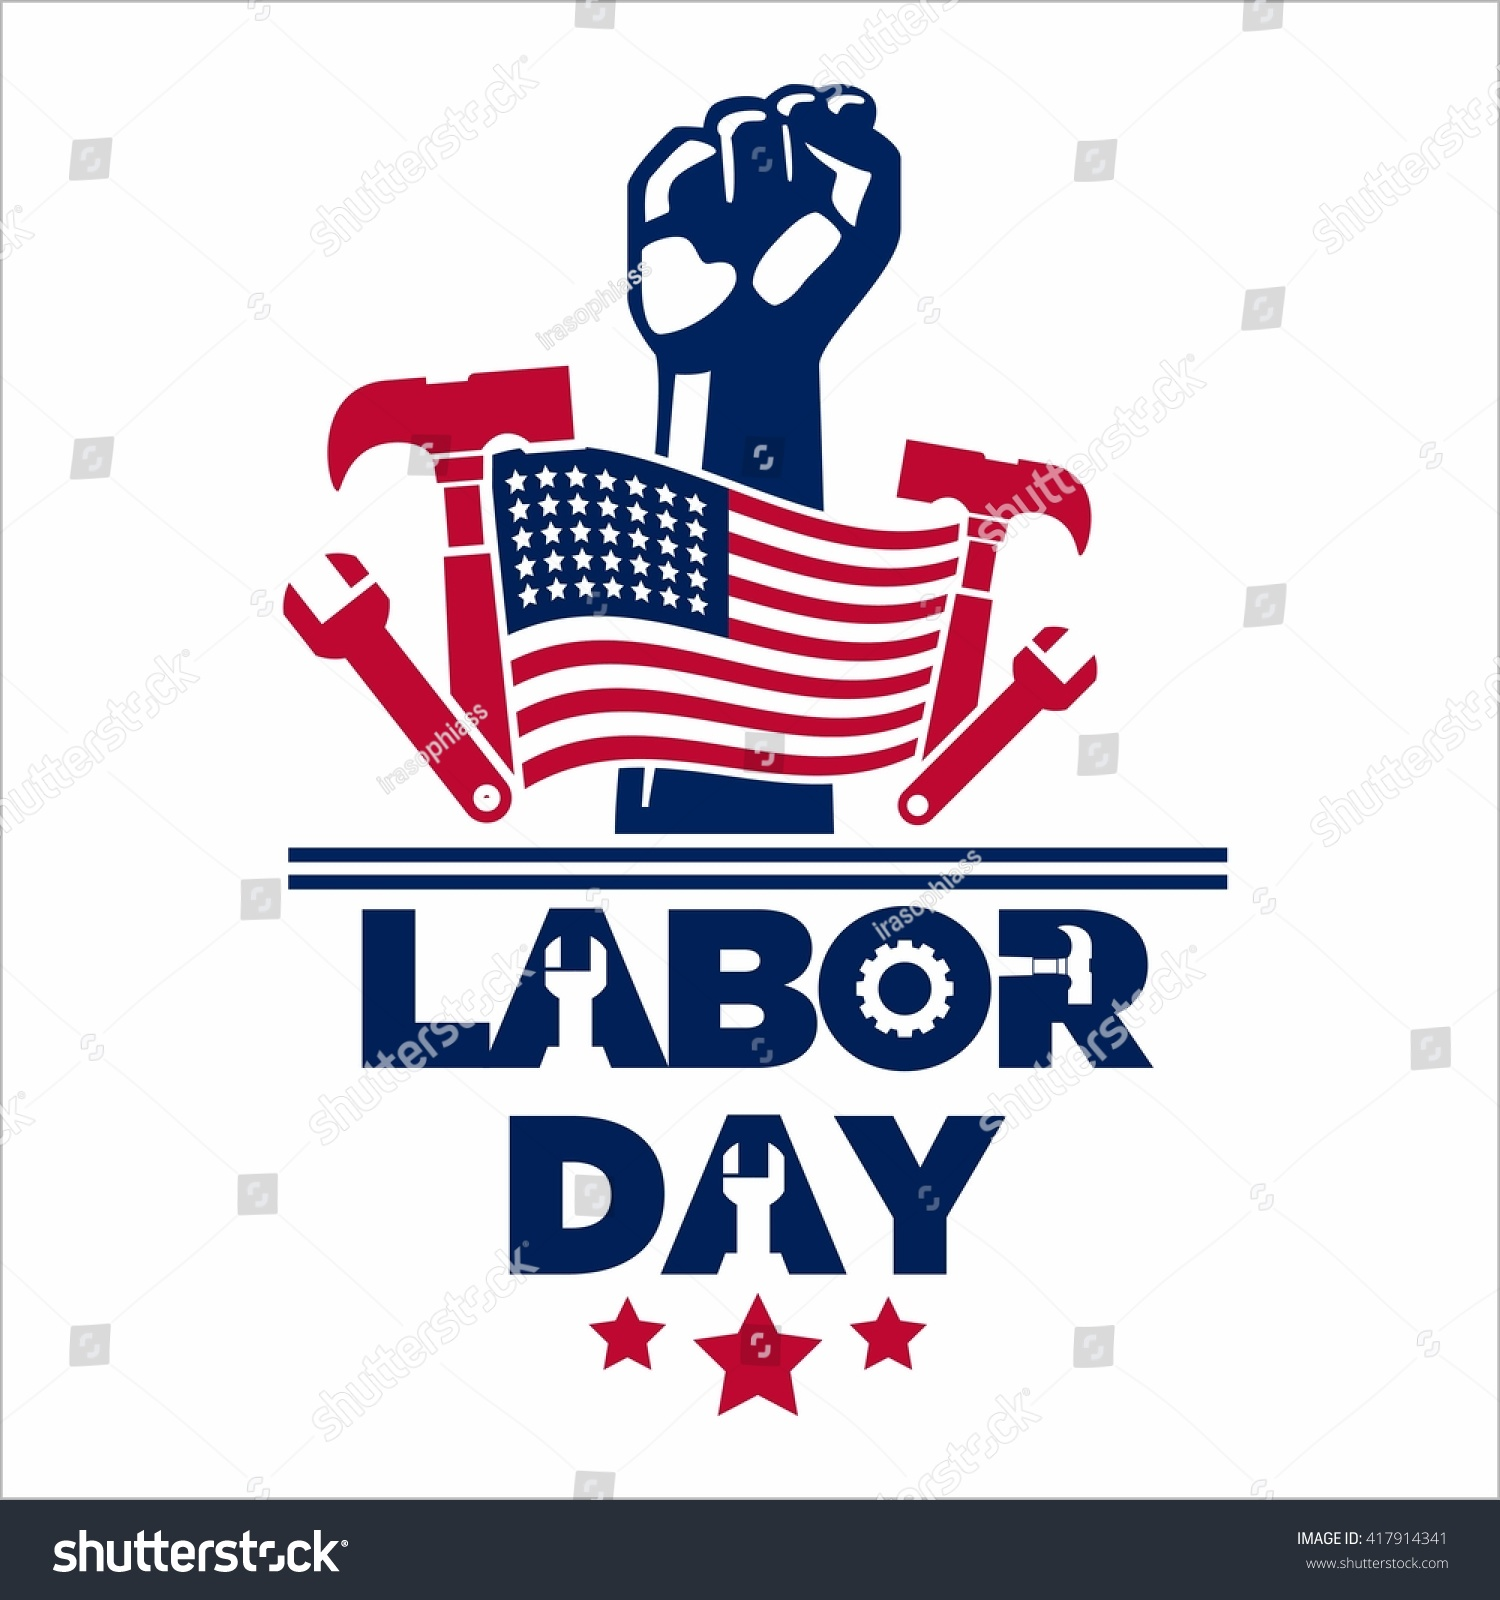 Labor day logo template stock vector 417914341 shutterstock labor day logo template buycottarizona Choice Image